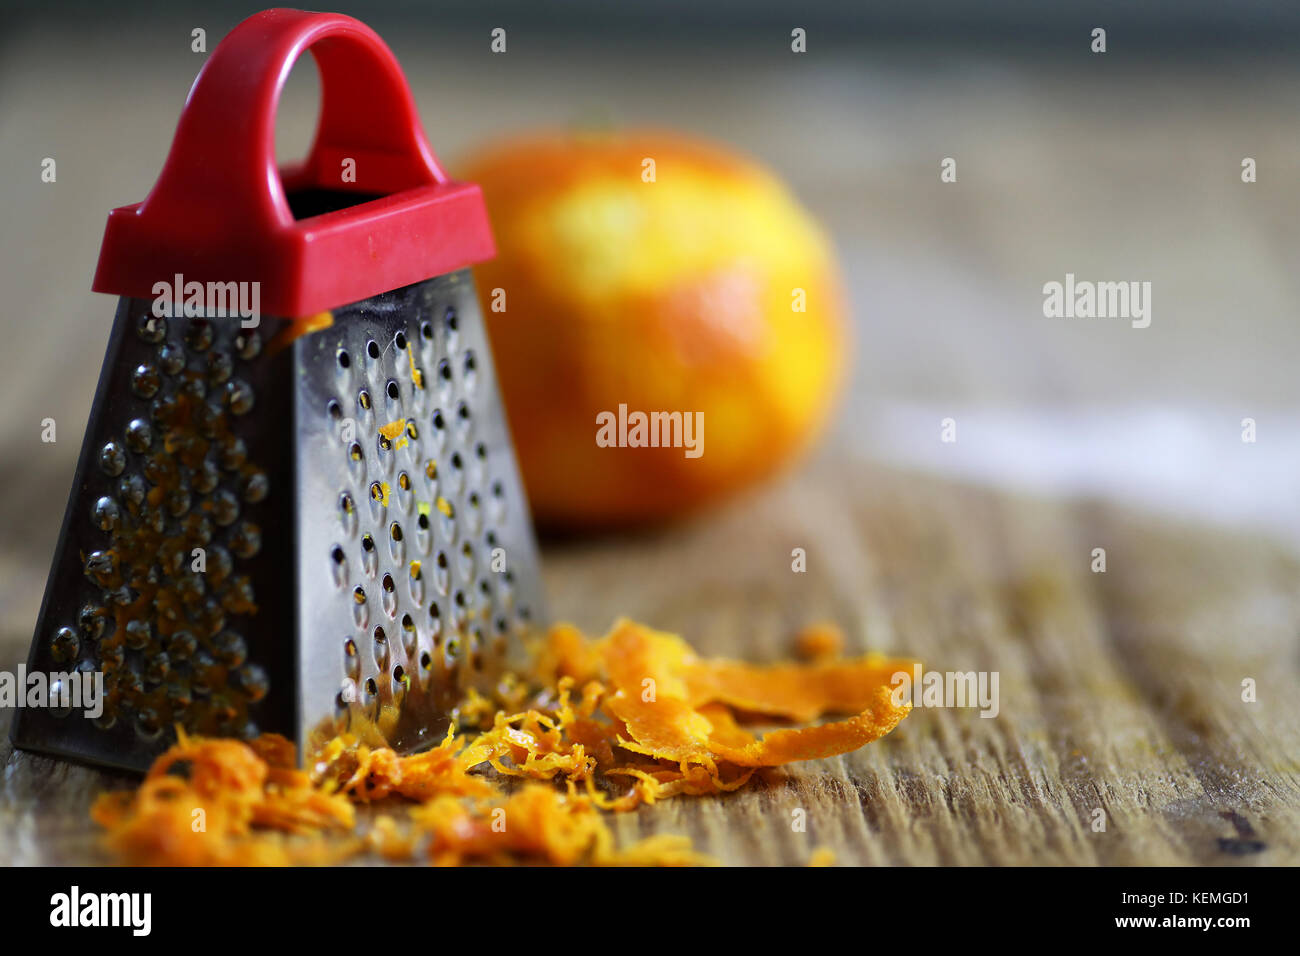 grater zest of citrus fruit and on wooden table - Stock Image